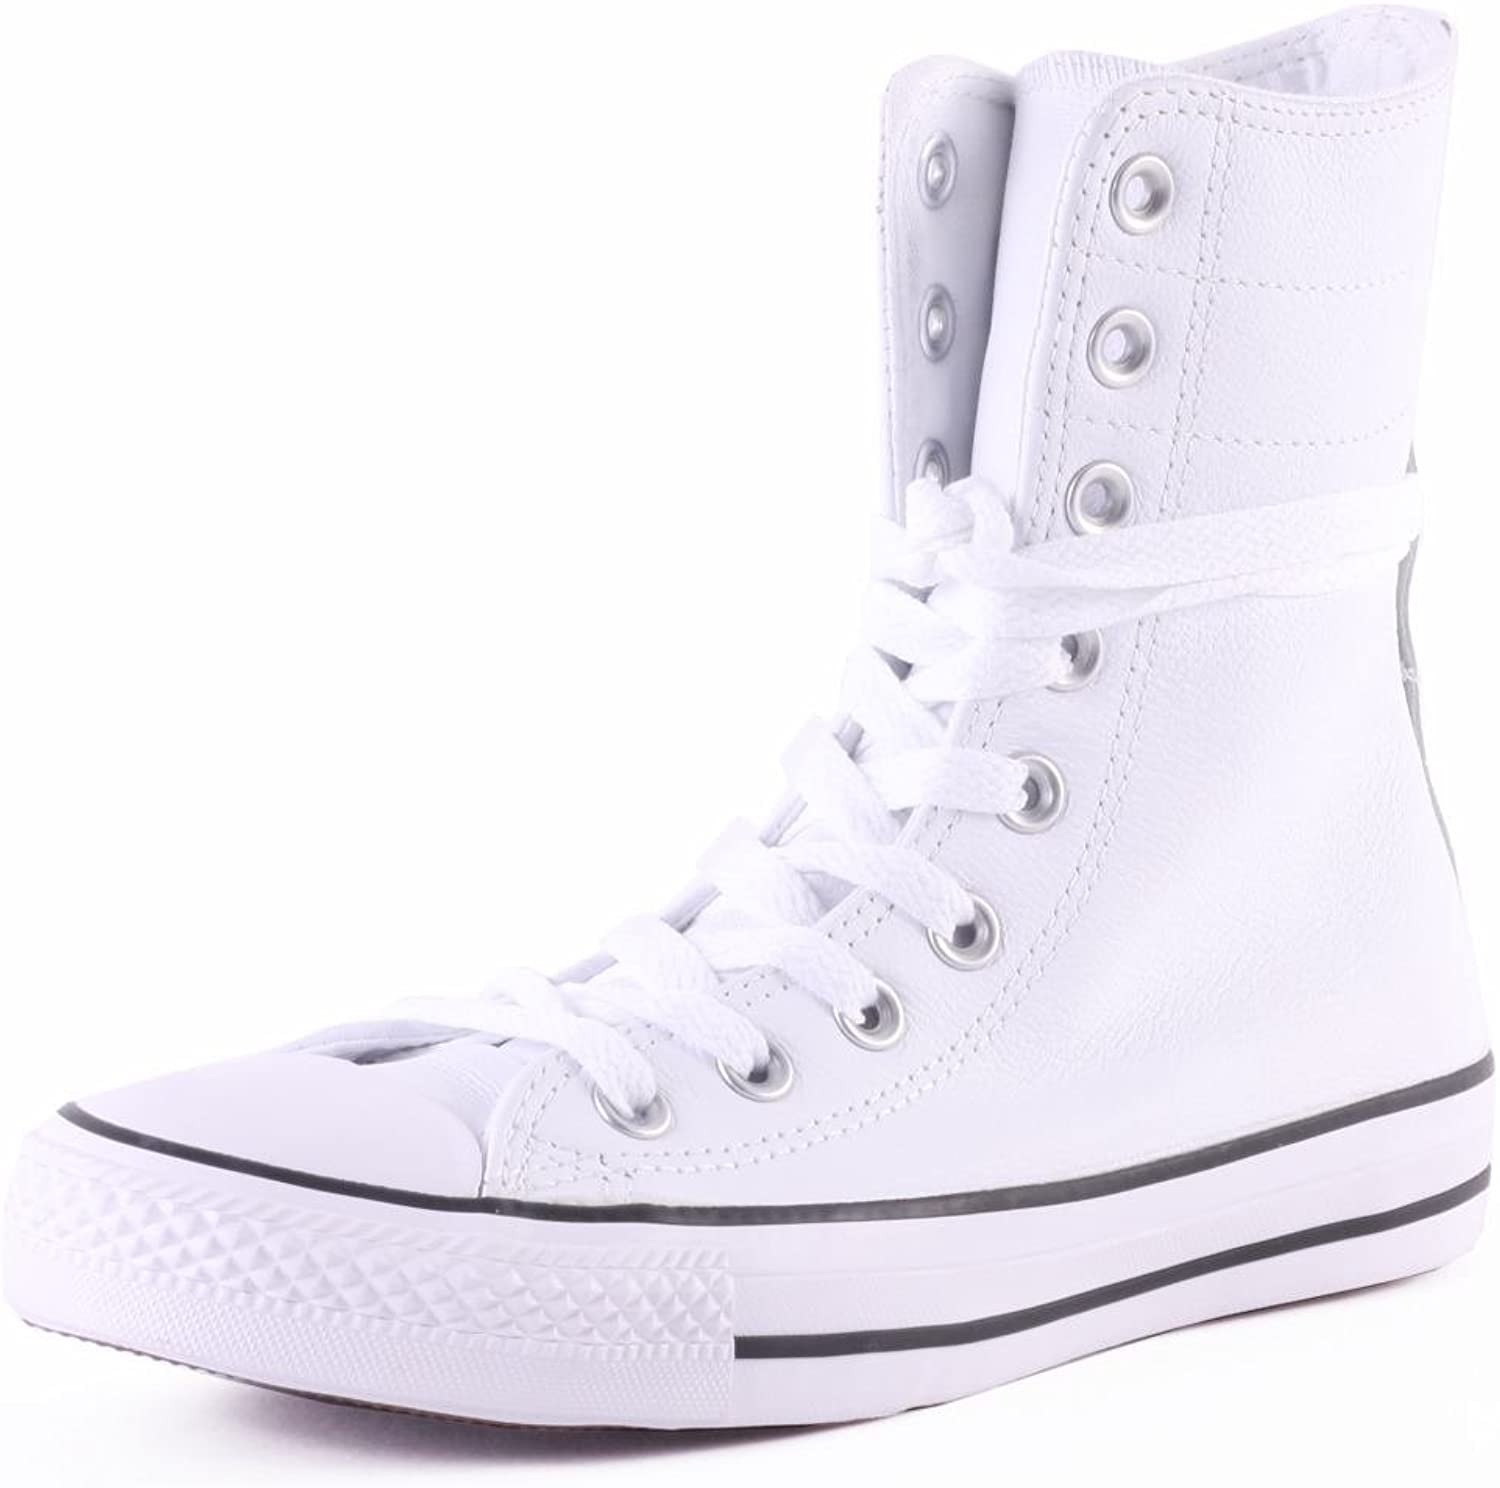 Chuck Taylor Women's HI-RISE White Leather Extra High Top